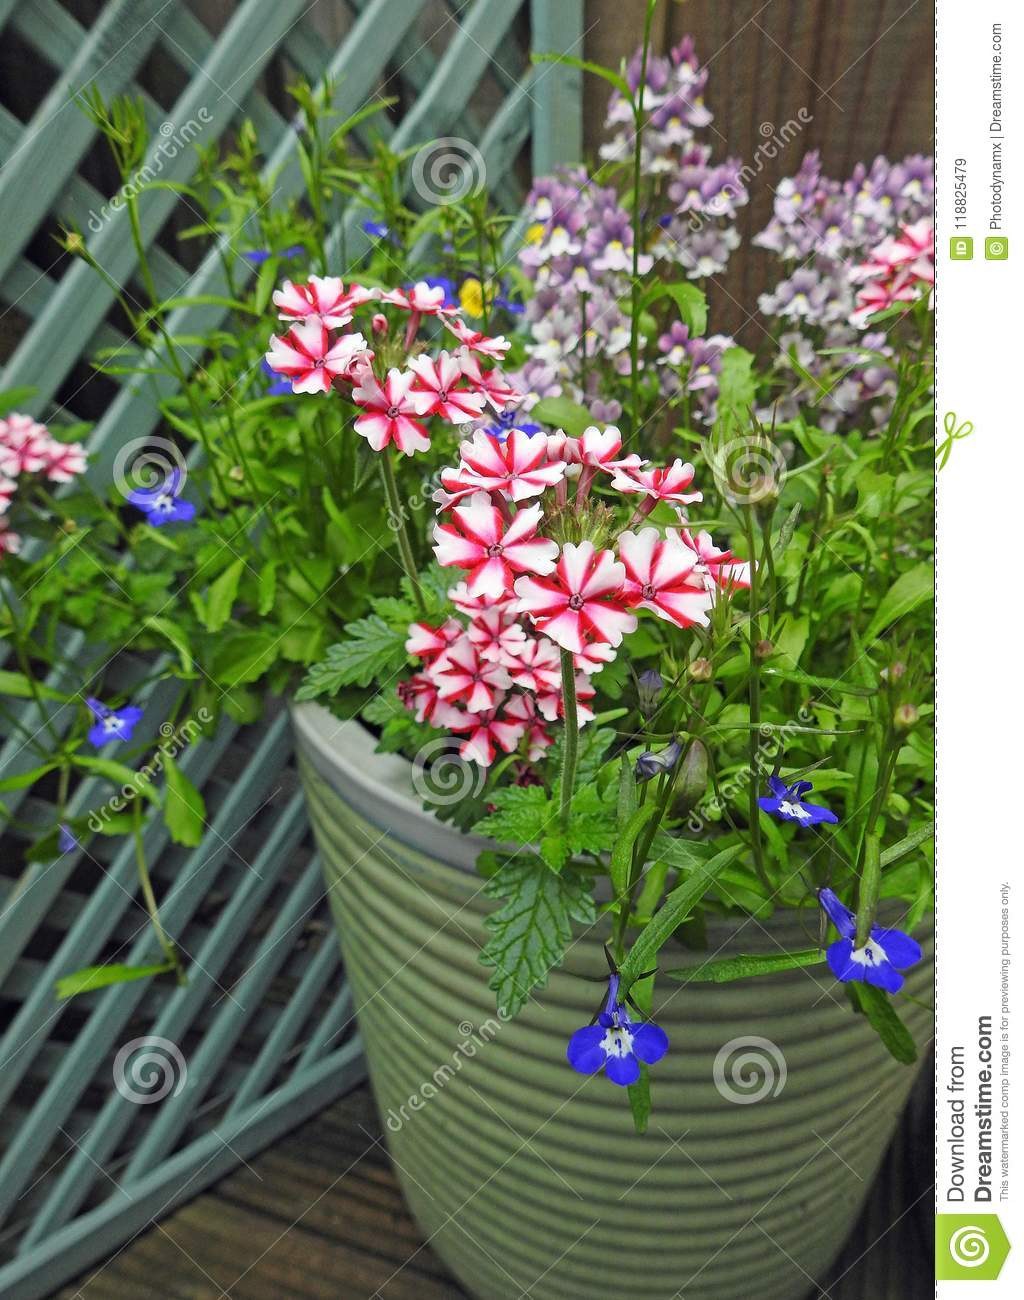 Dreamstime.com & Small Space Garden Potted Flowers And Plants Stock Image - Image of ...